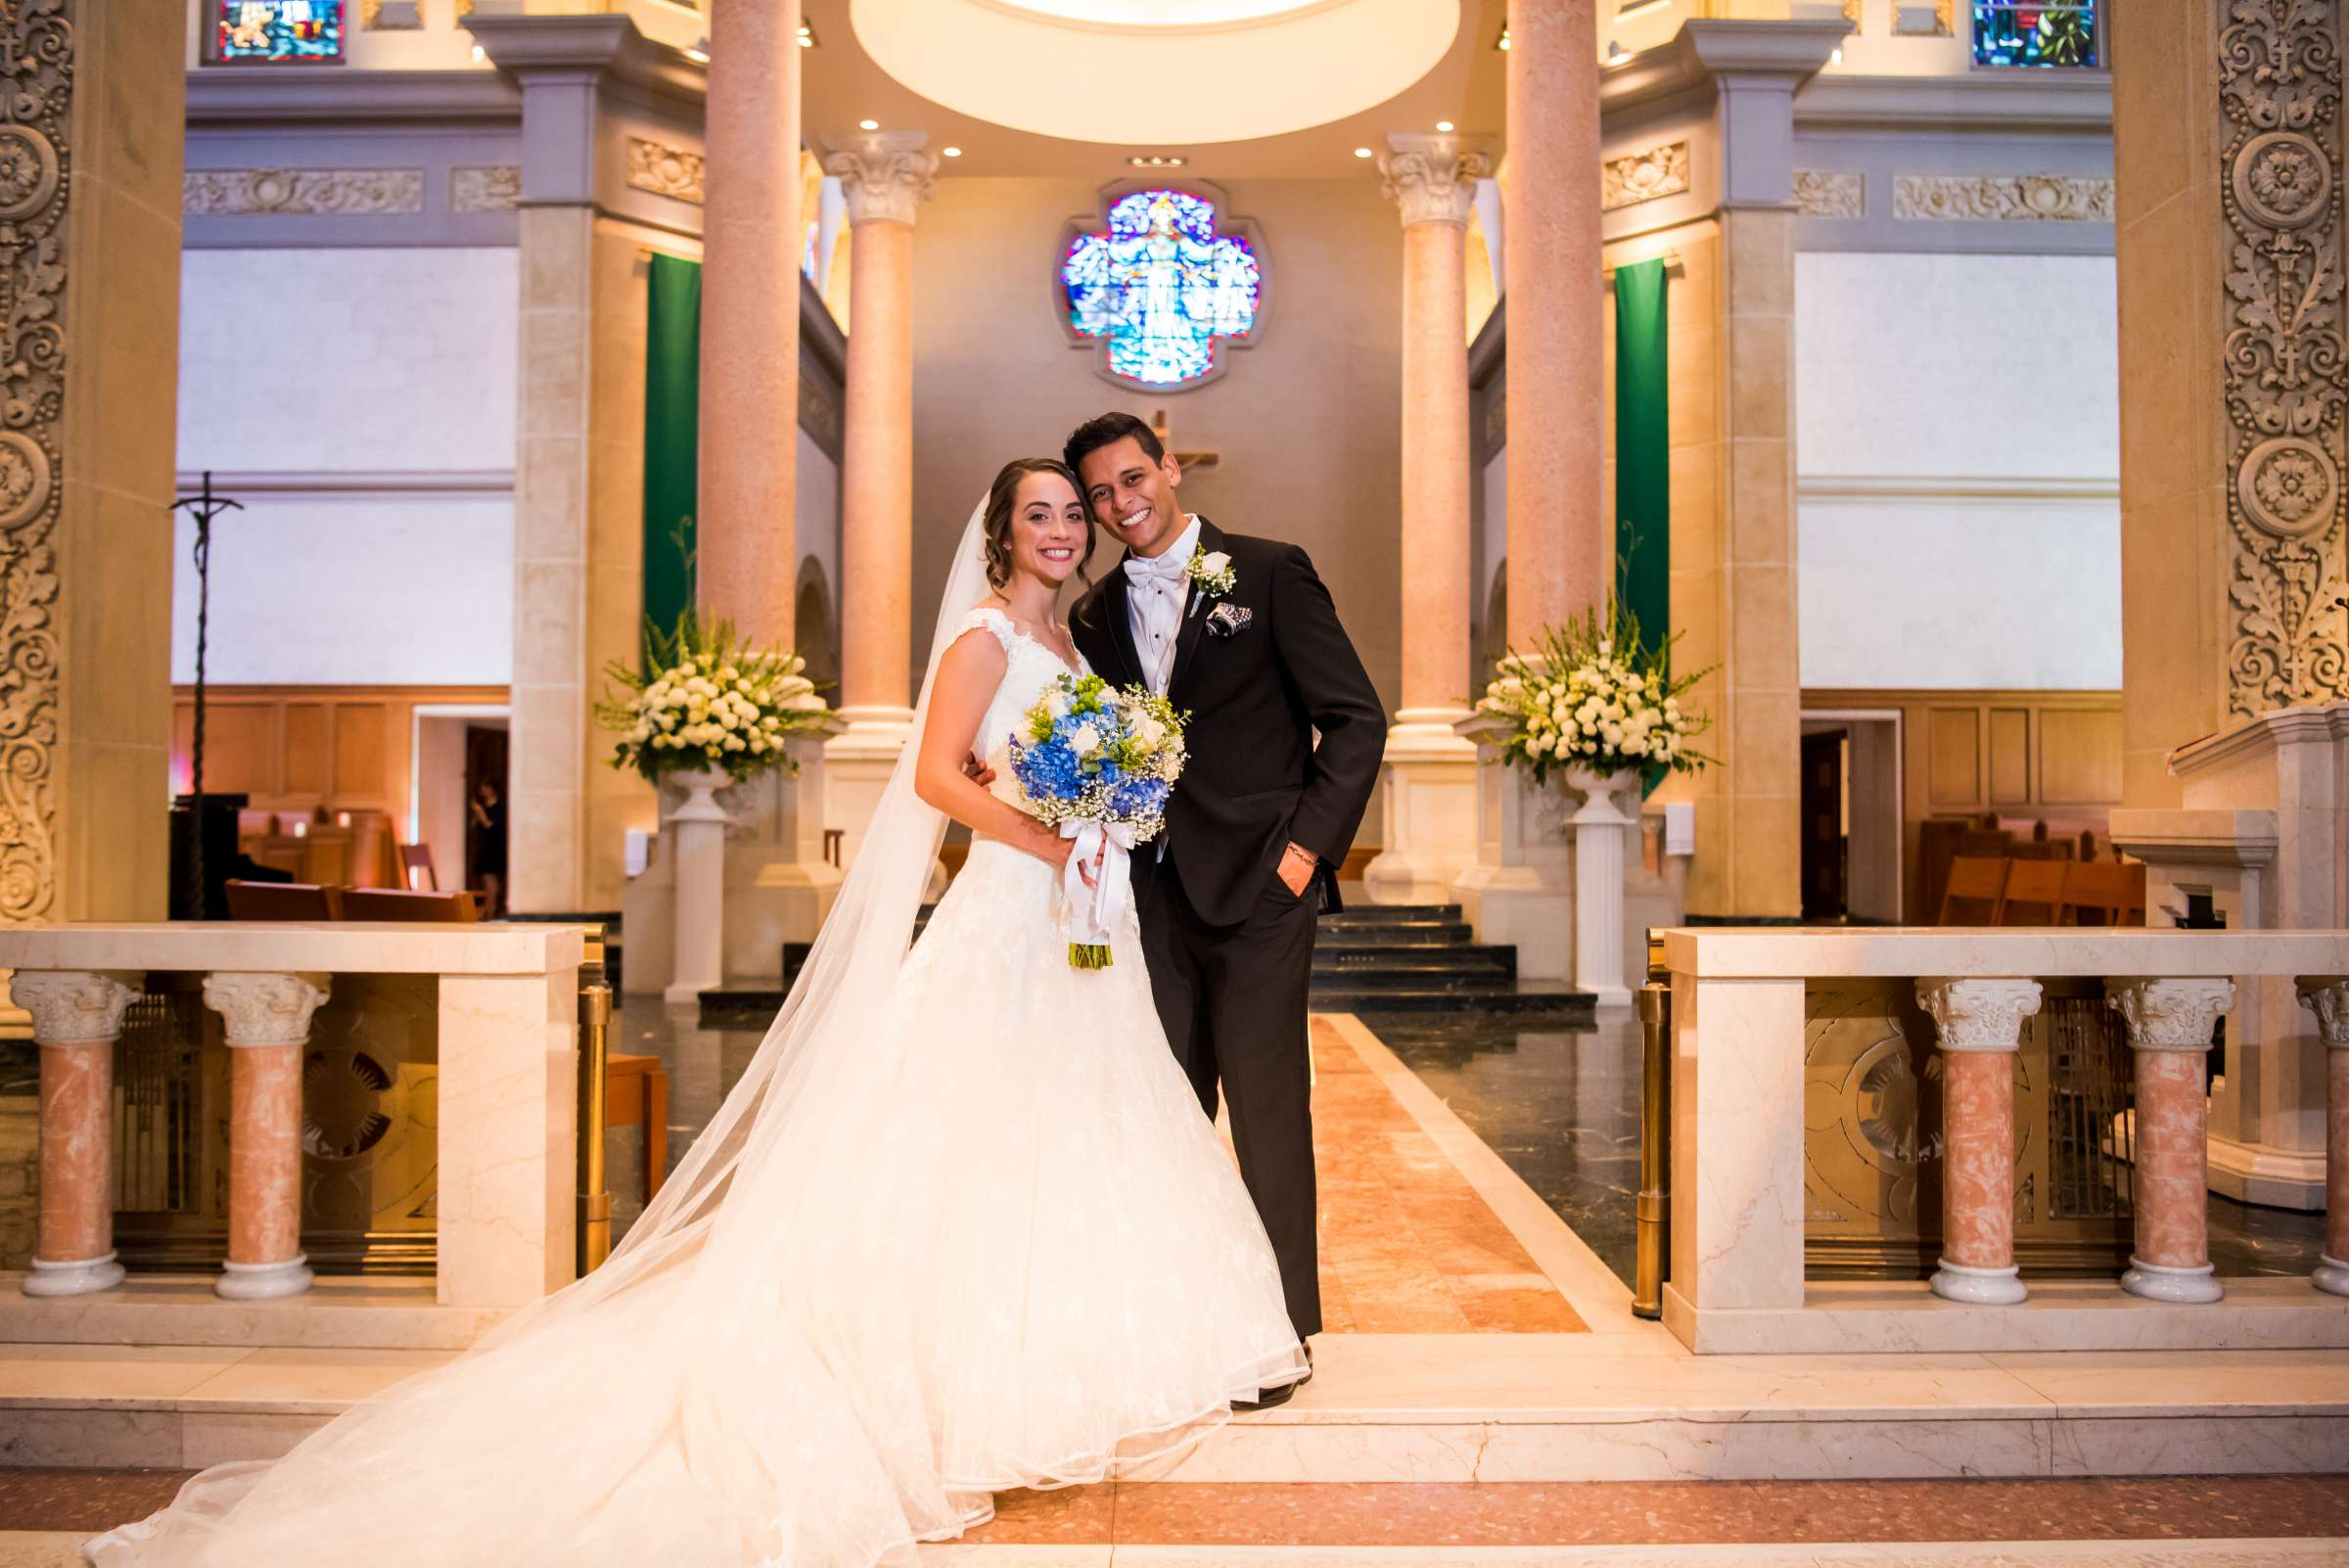 The Immaculata Wedding, Arianna and Jonah Wedding Photo #139 by True Photography